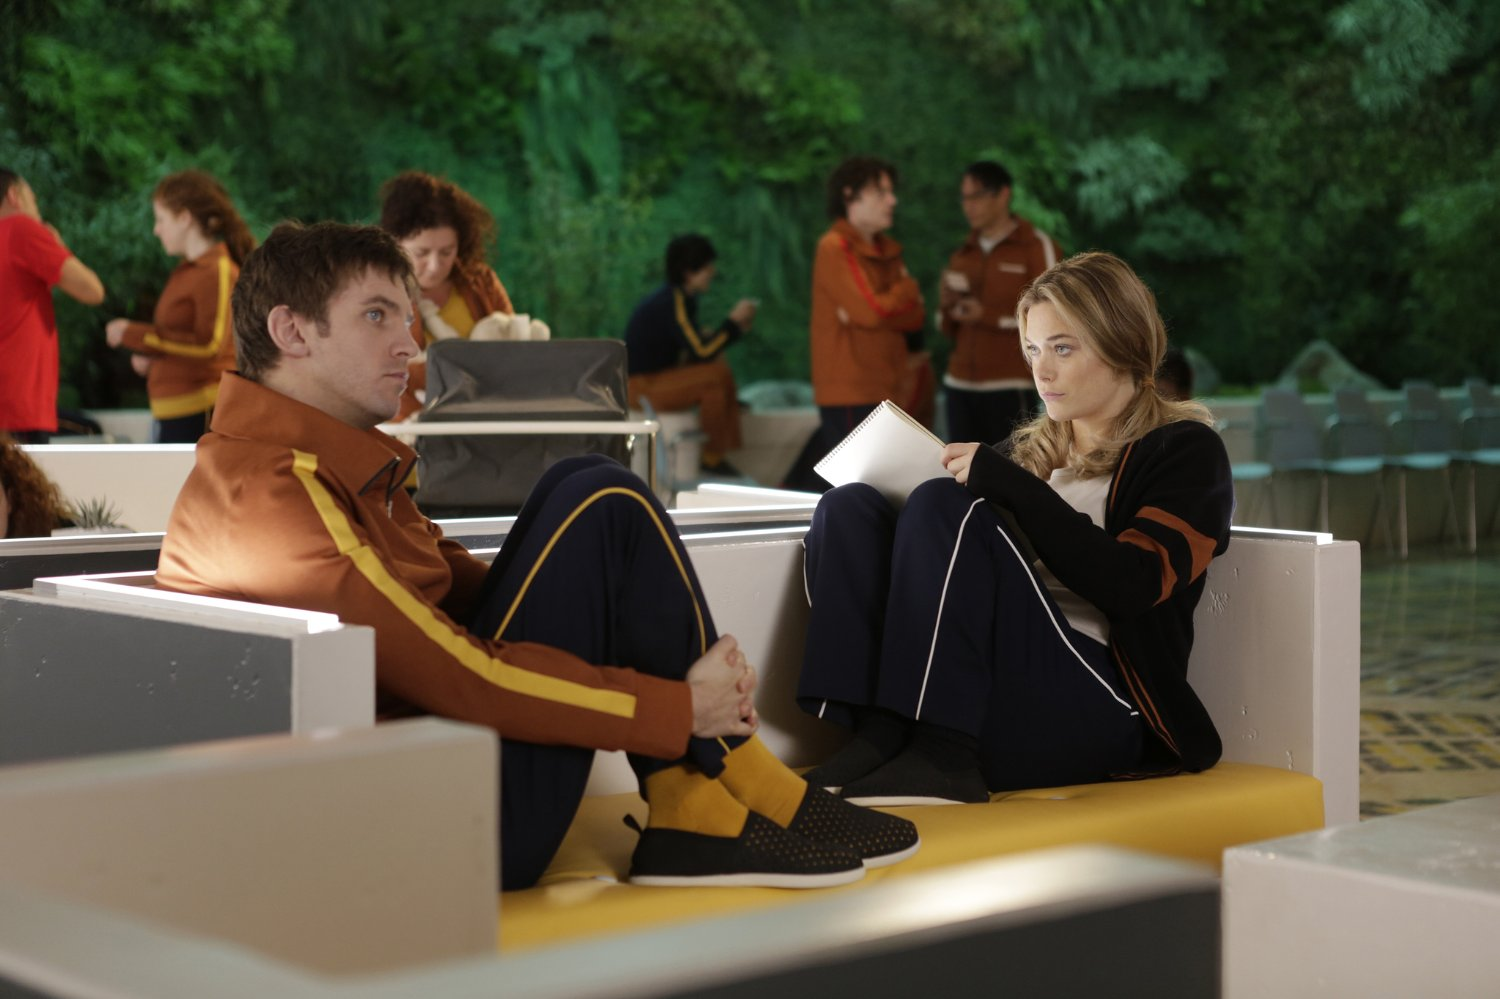 Review: 'Legion' Launches with Impressive First Episode